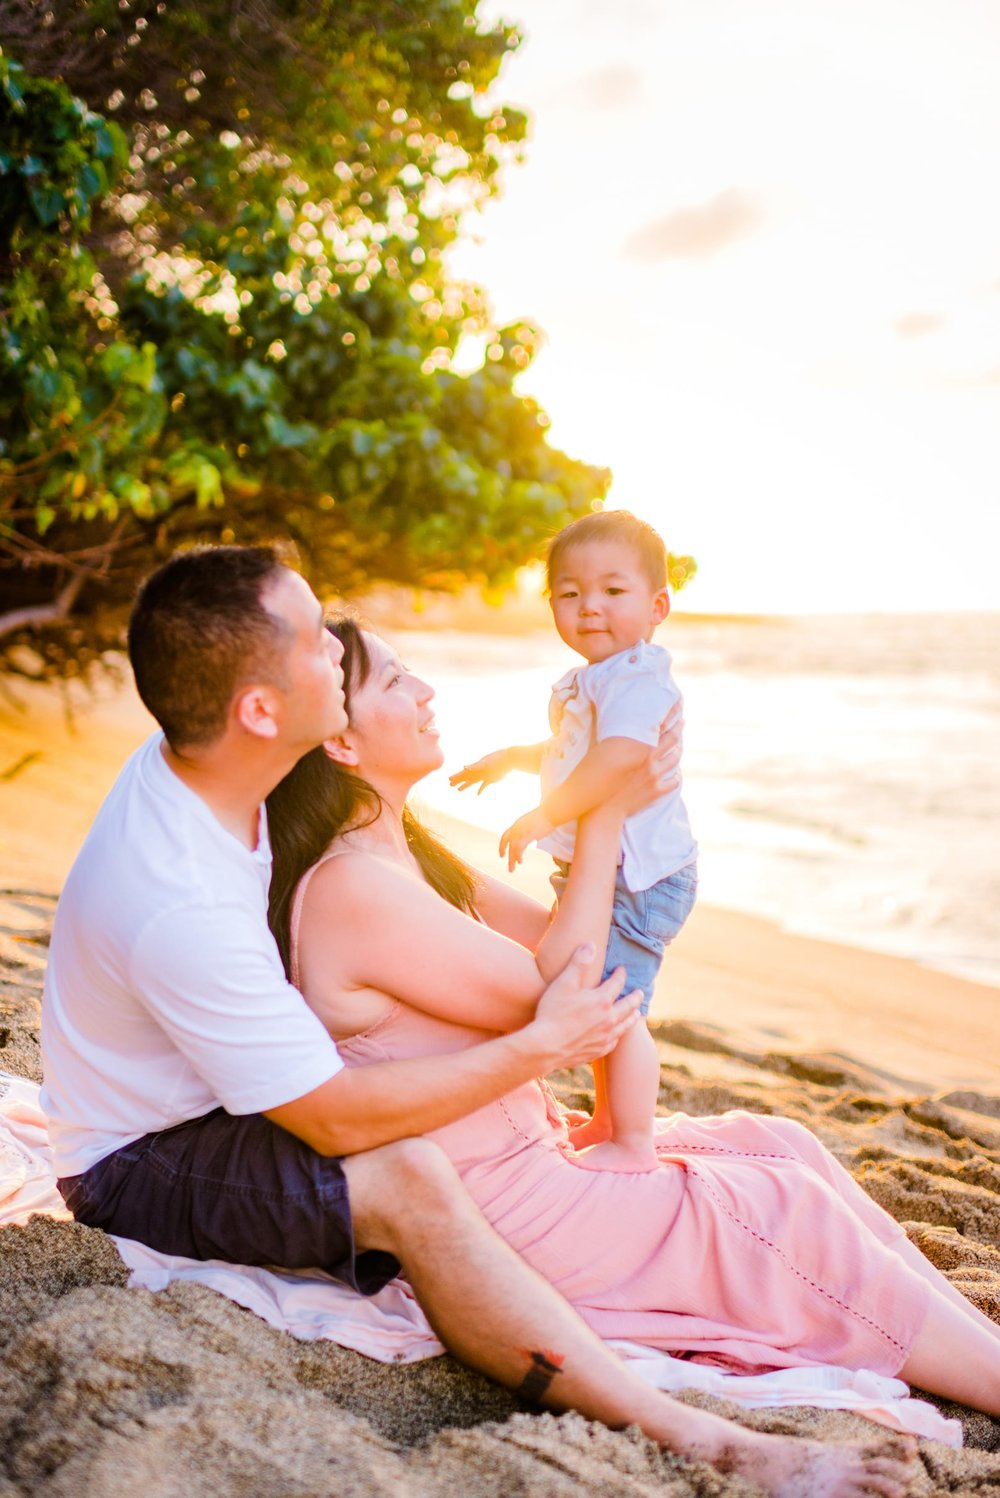 Hilton-Waikoloa-Village-Family-Photographer-Hawaii-12.jpg